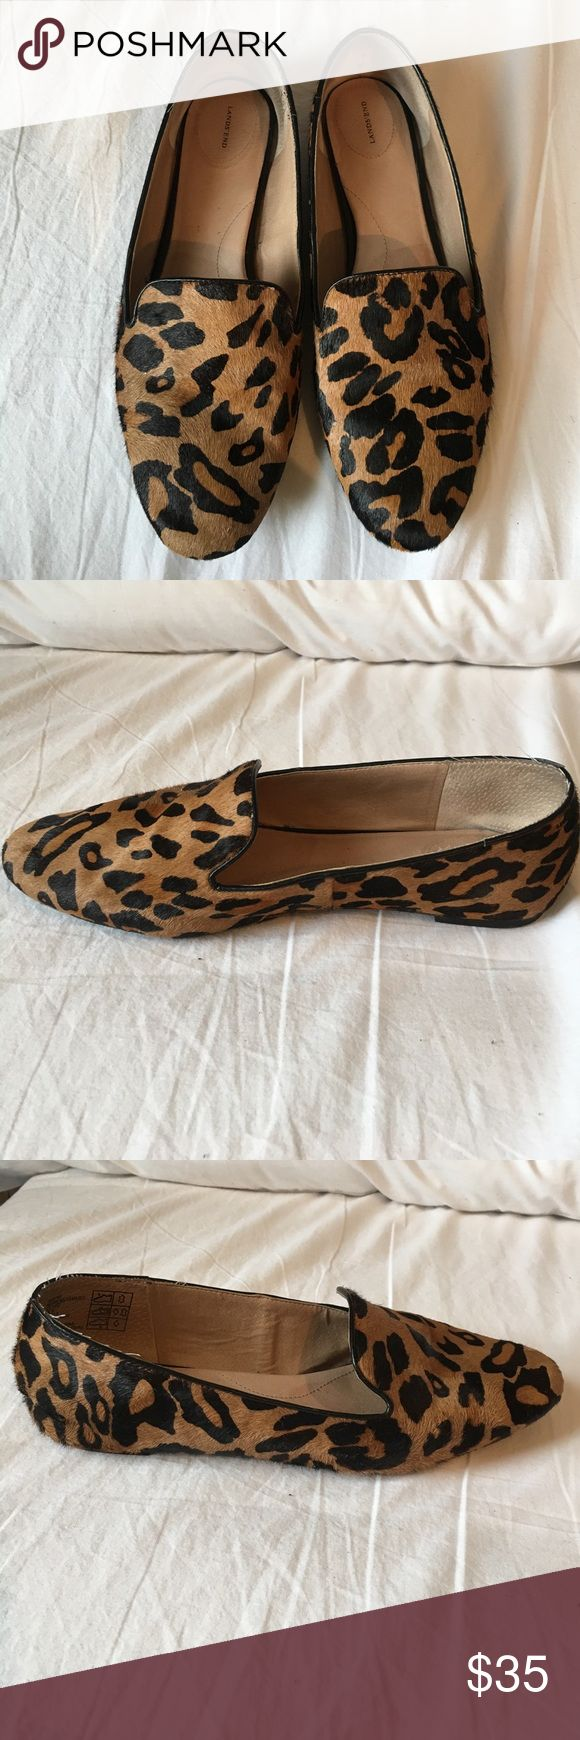 Women's  size 10D cheetah print calf hair loafers Lands end women's size 10D cheetah print calf hair loafers. These are a (re) posh. They are too wide for my feet. land's end Shoes Flats & Loafers